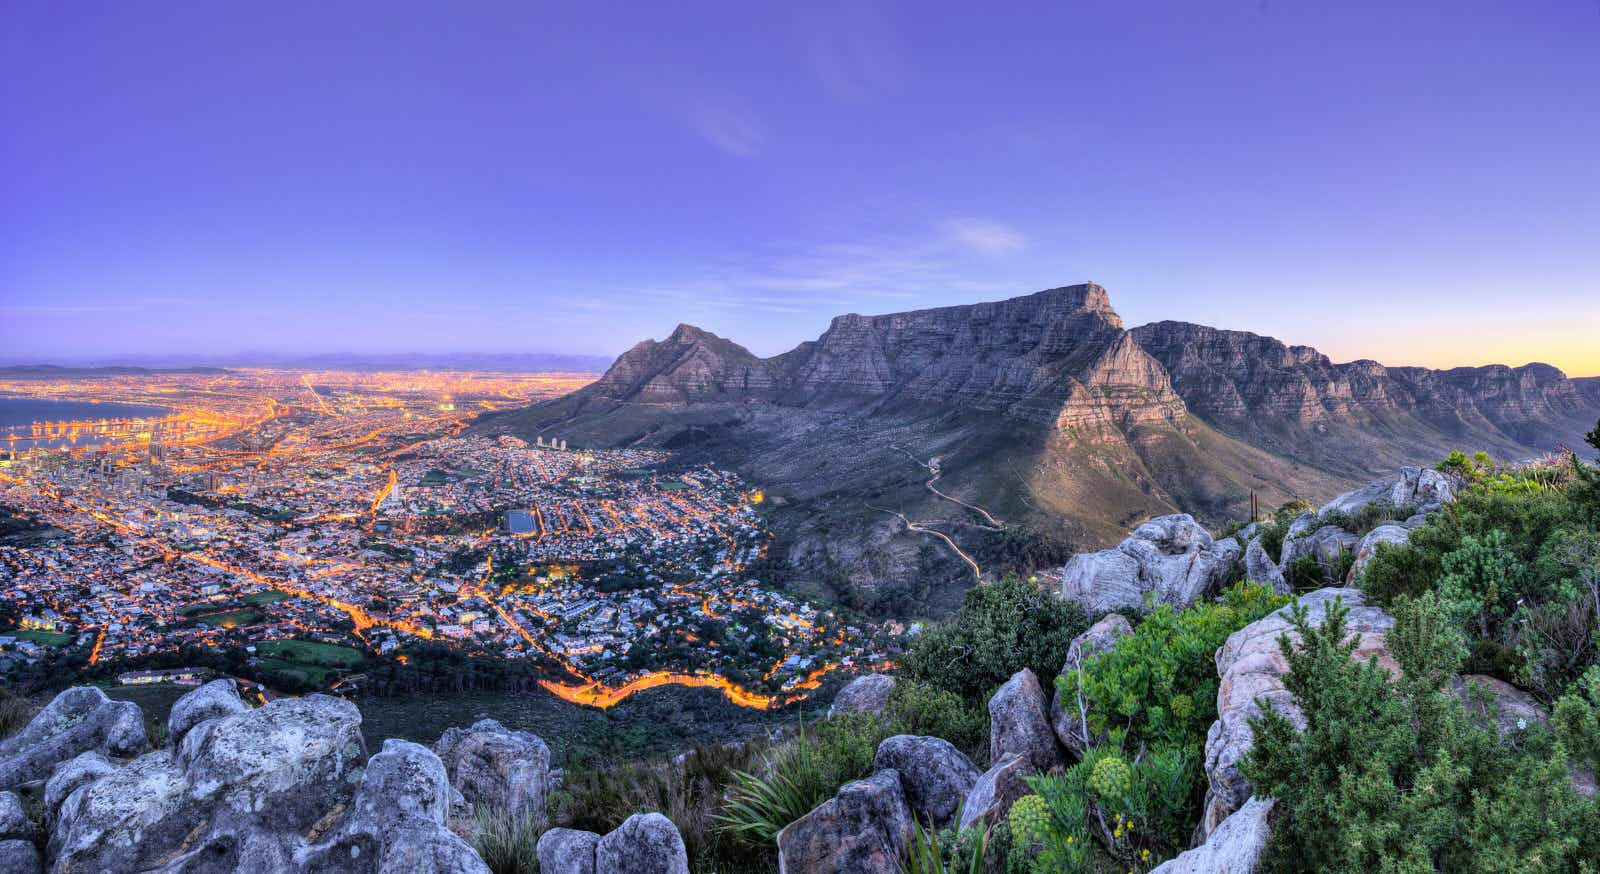 The lights come on as night falls over Cape Town and Table Mountain  © Quality Master / Shutterstock